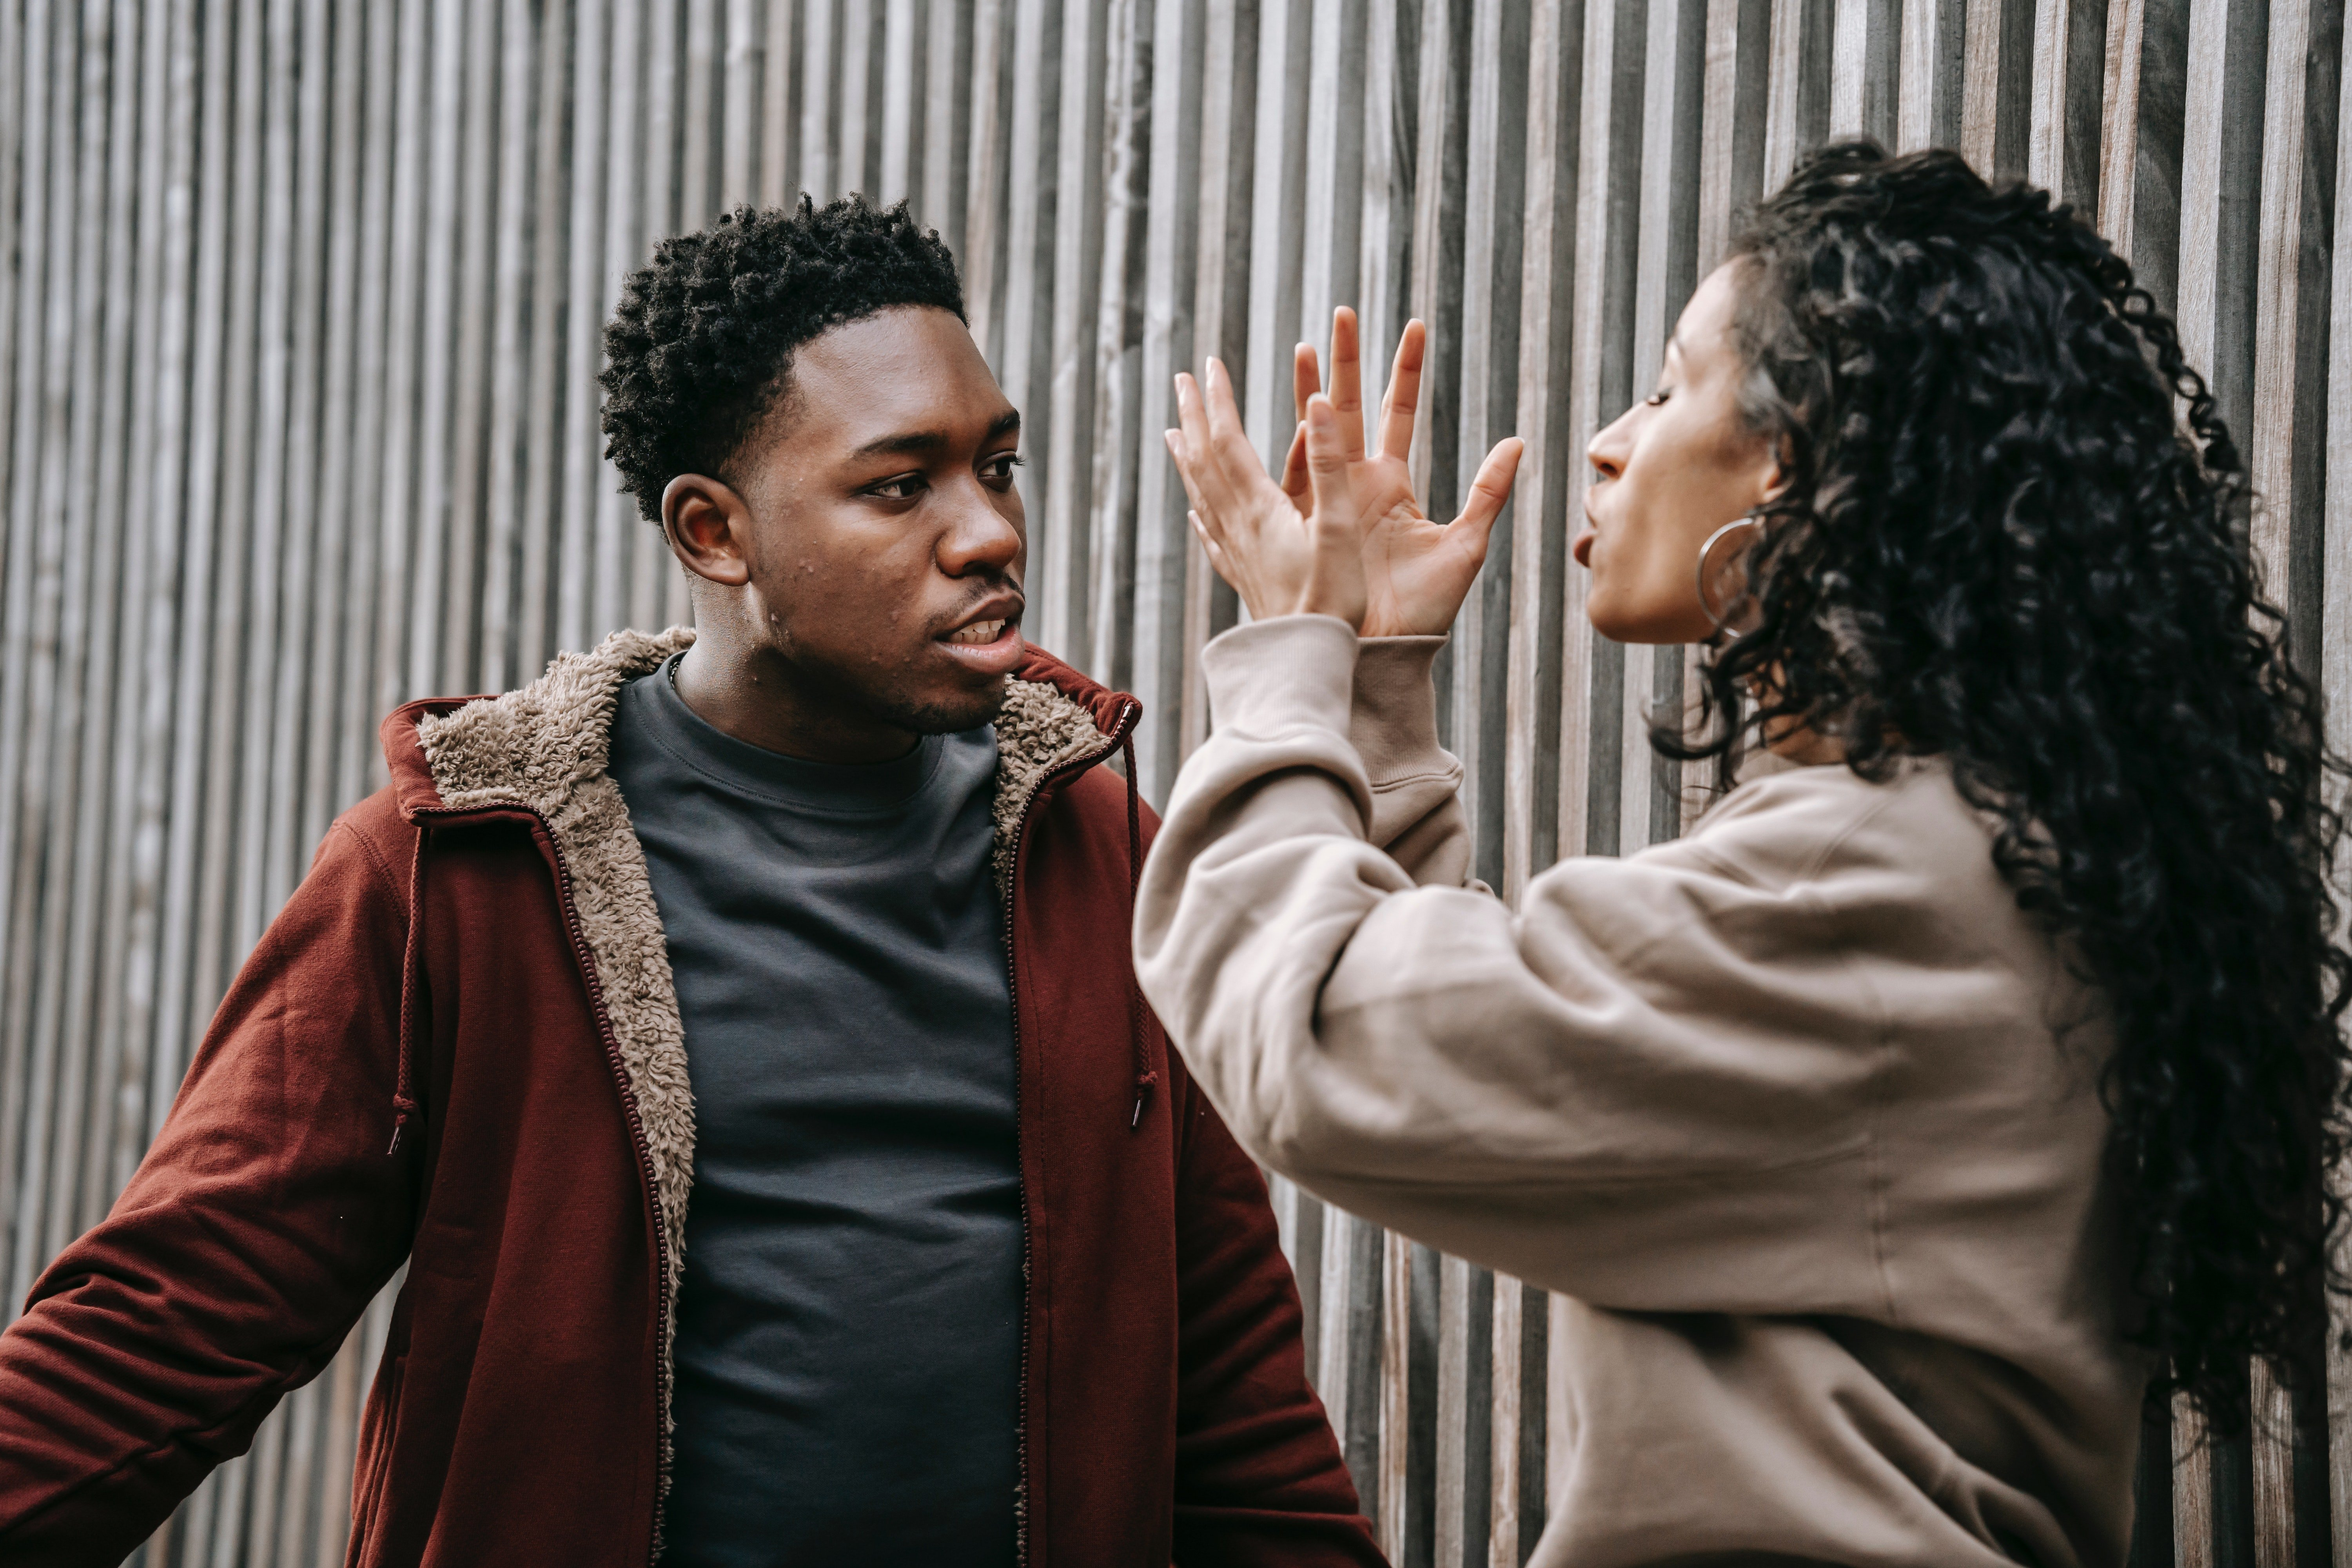 Young man and woman arguing   Source: Pexels